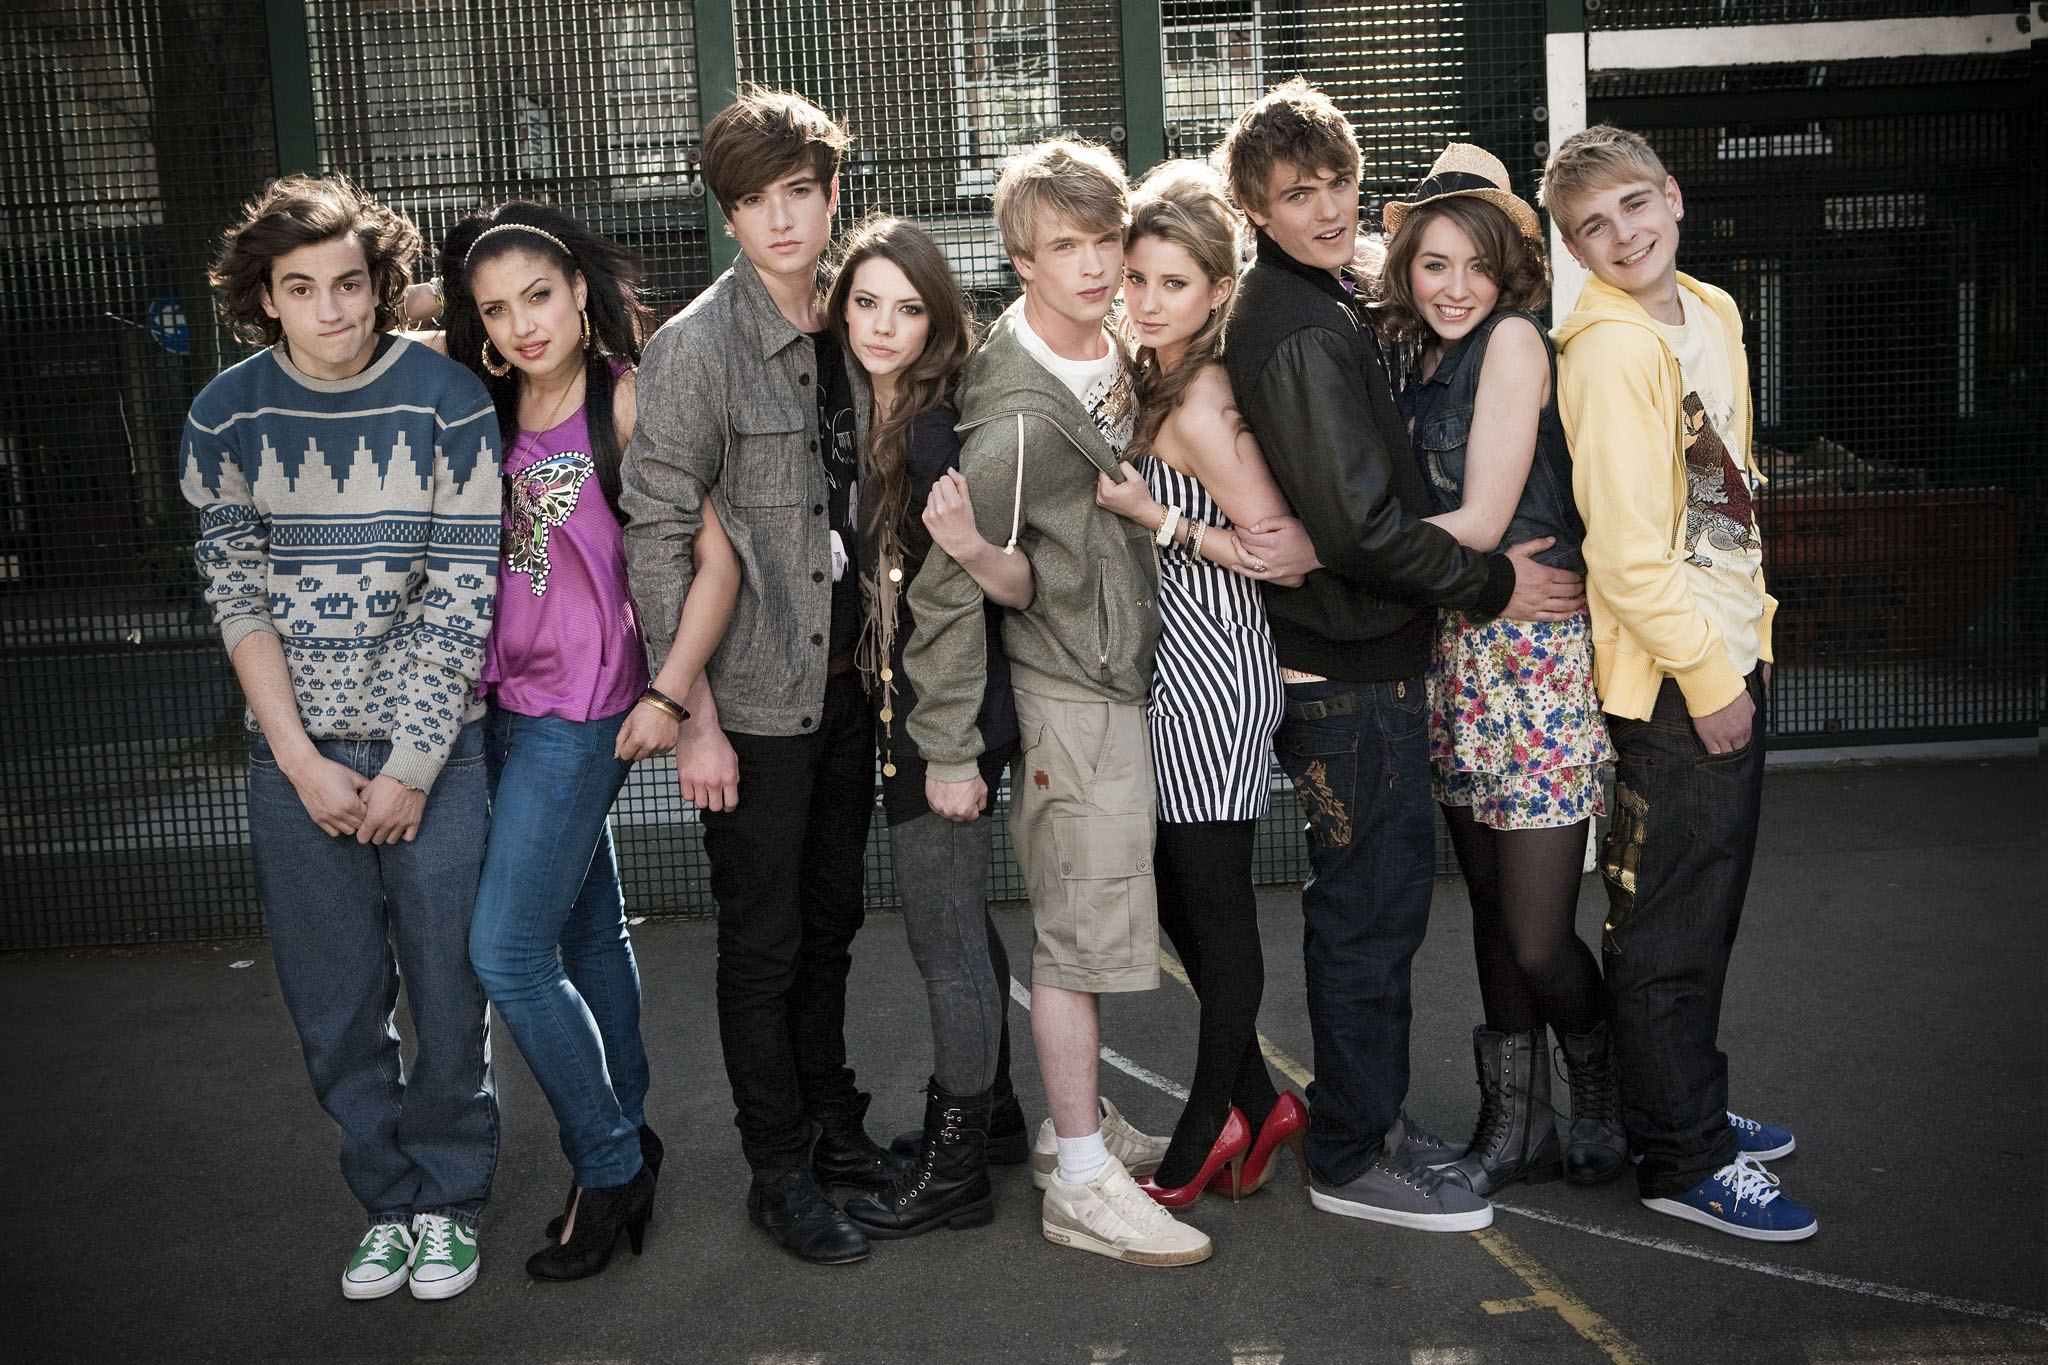 bbc teen drama makes the cut with foothill – tbi vision